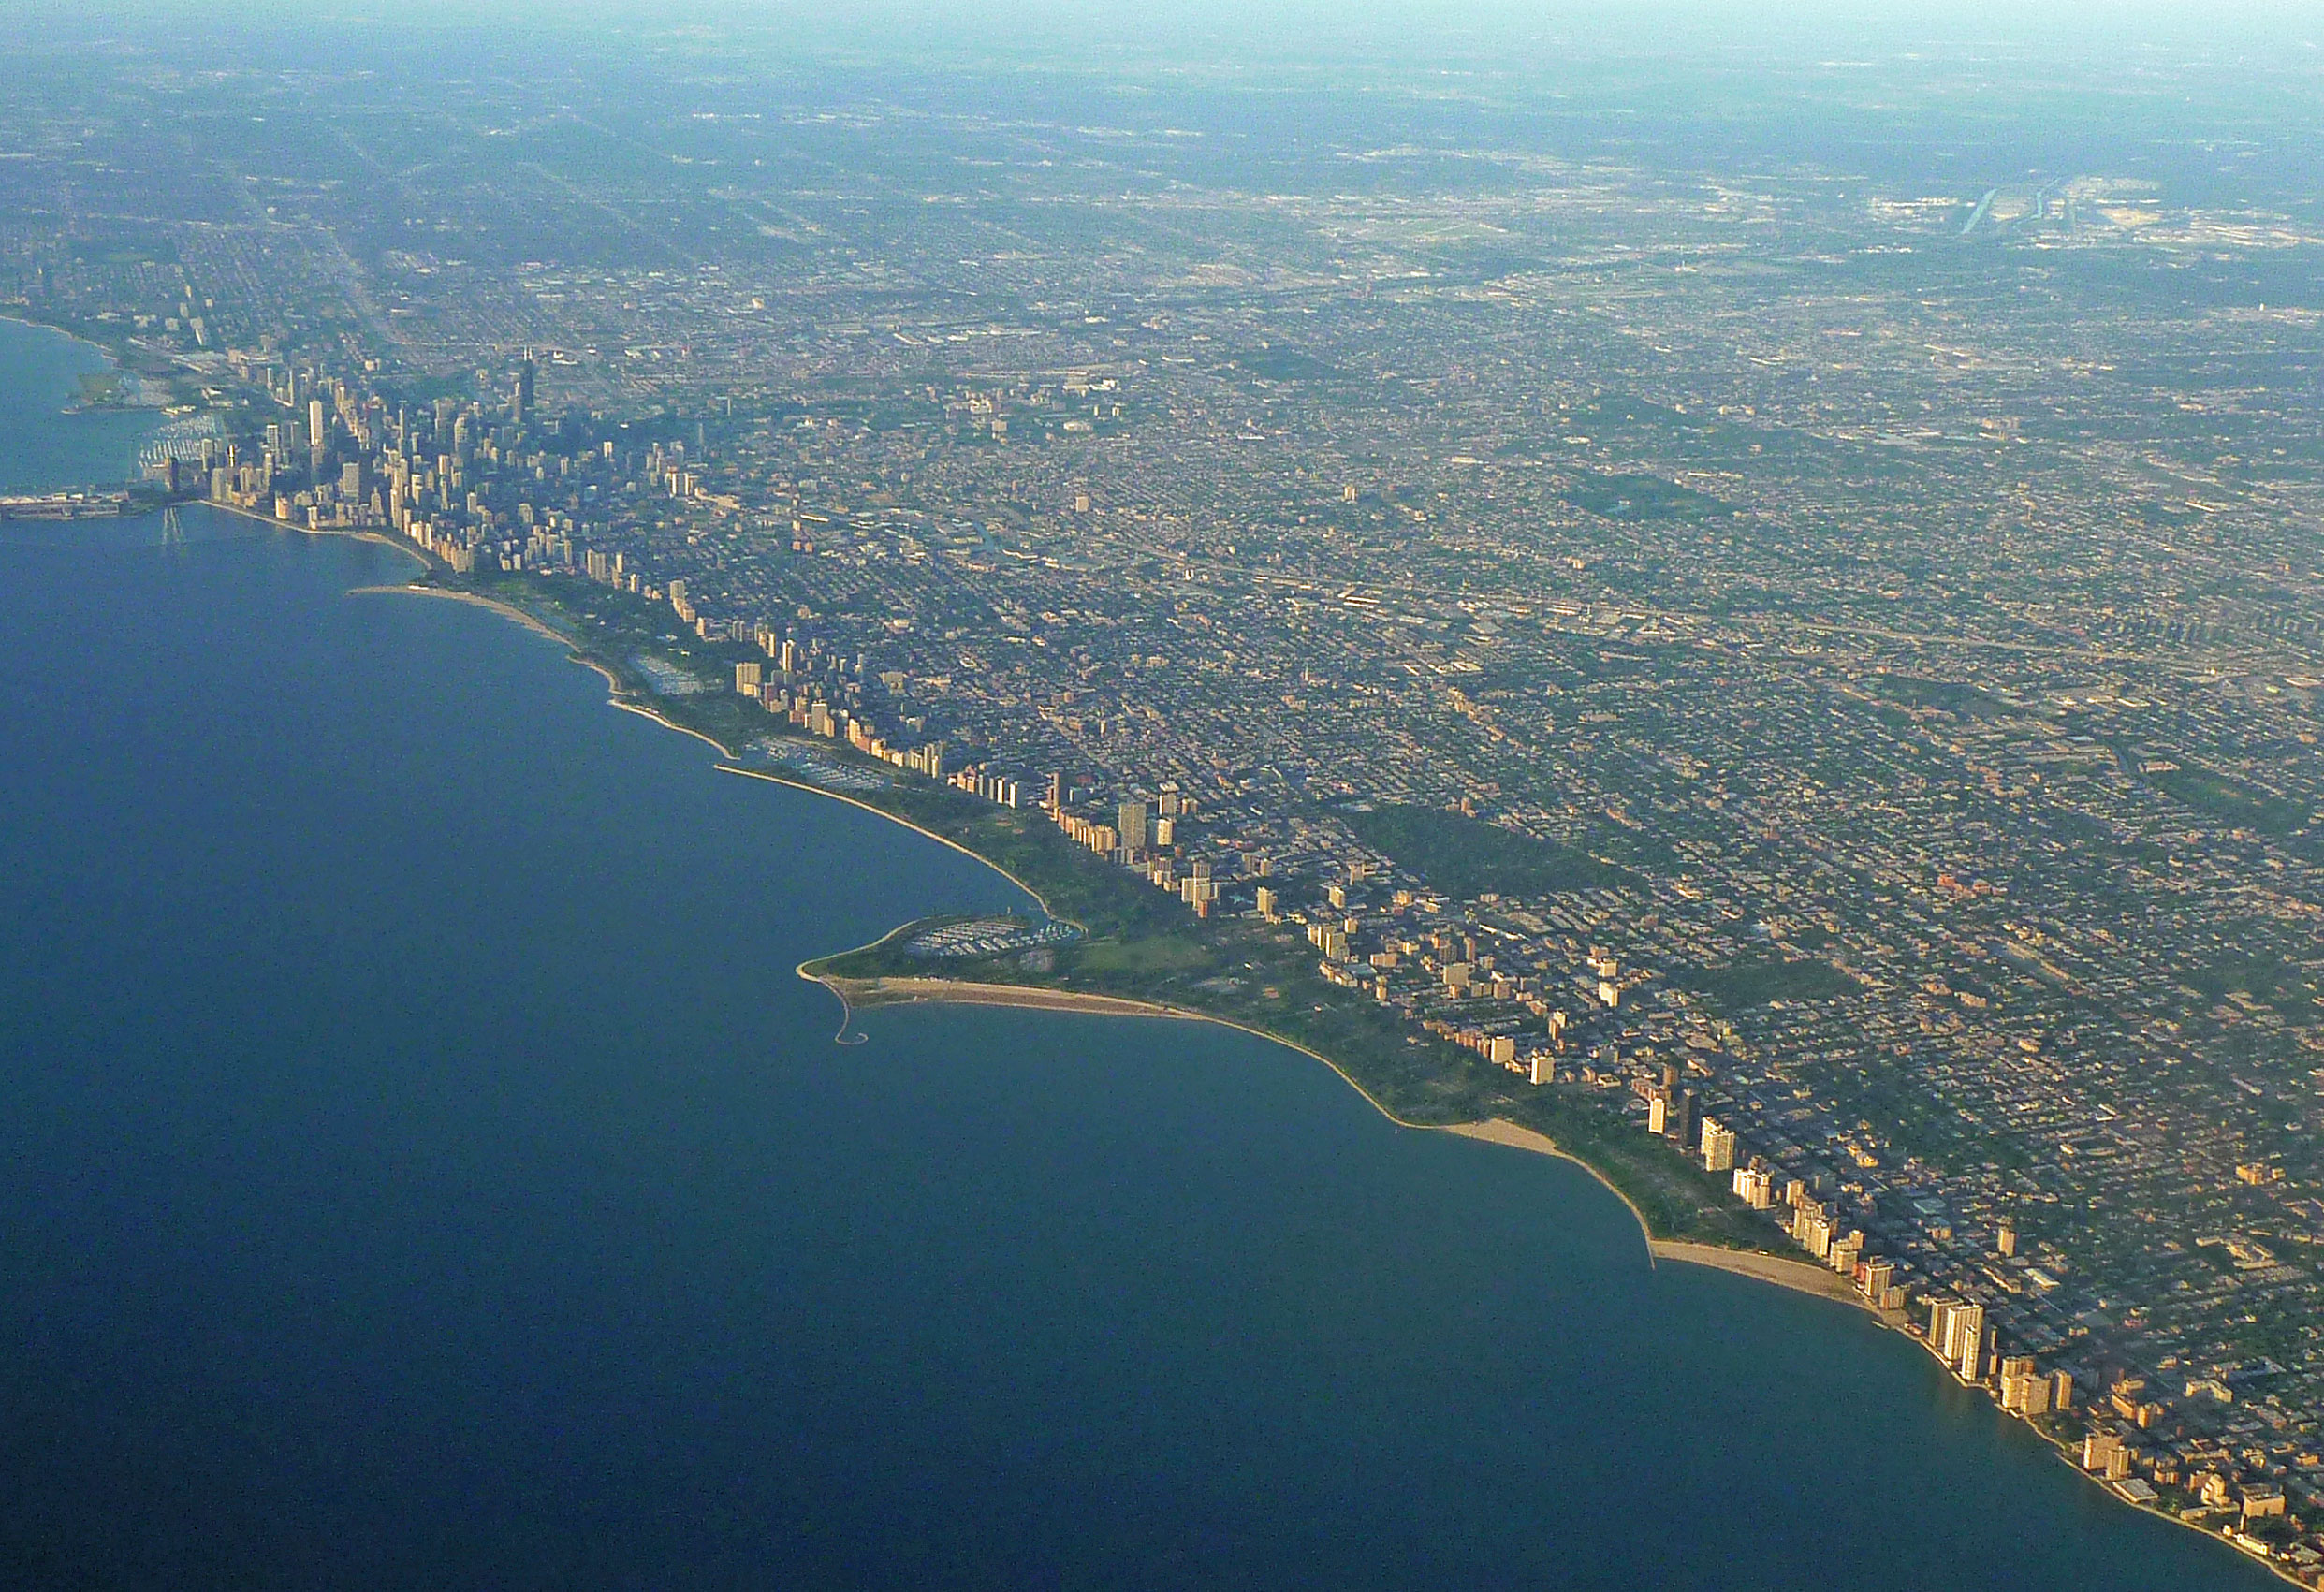 File:Full chicago skyline.jpg